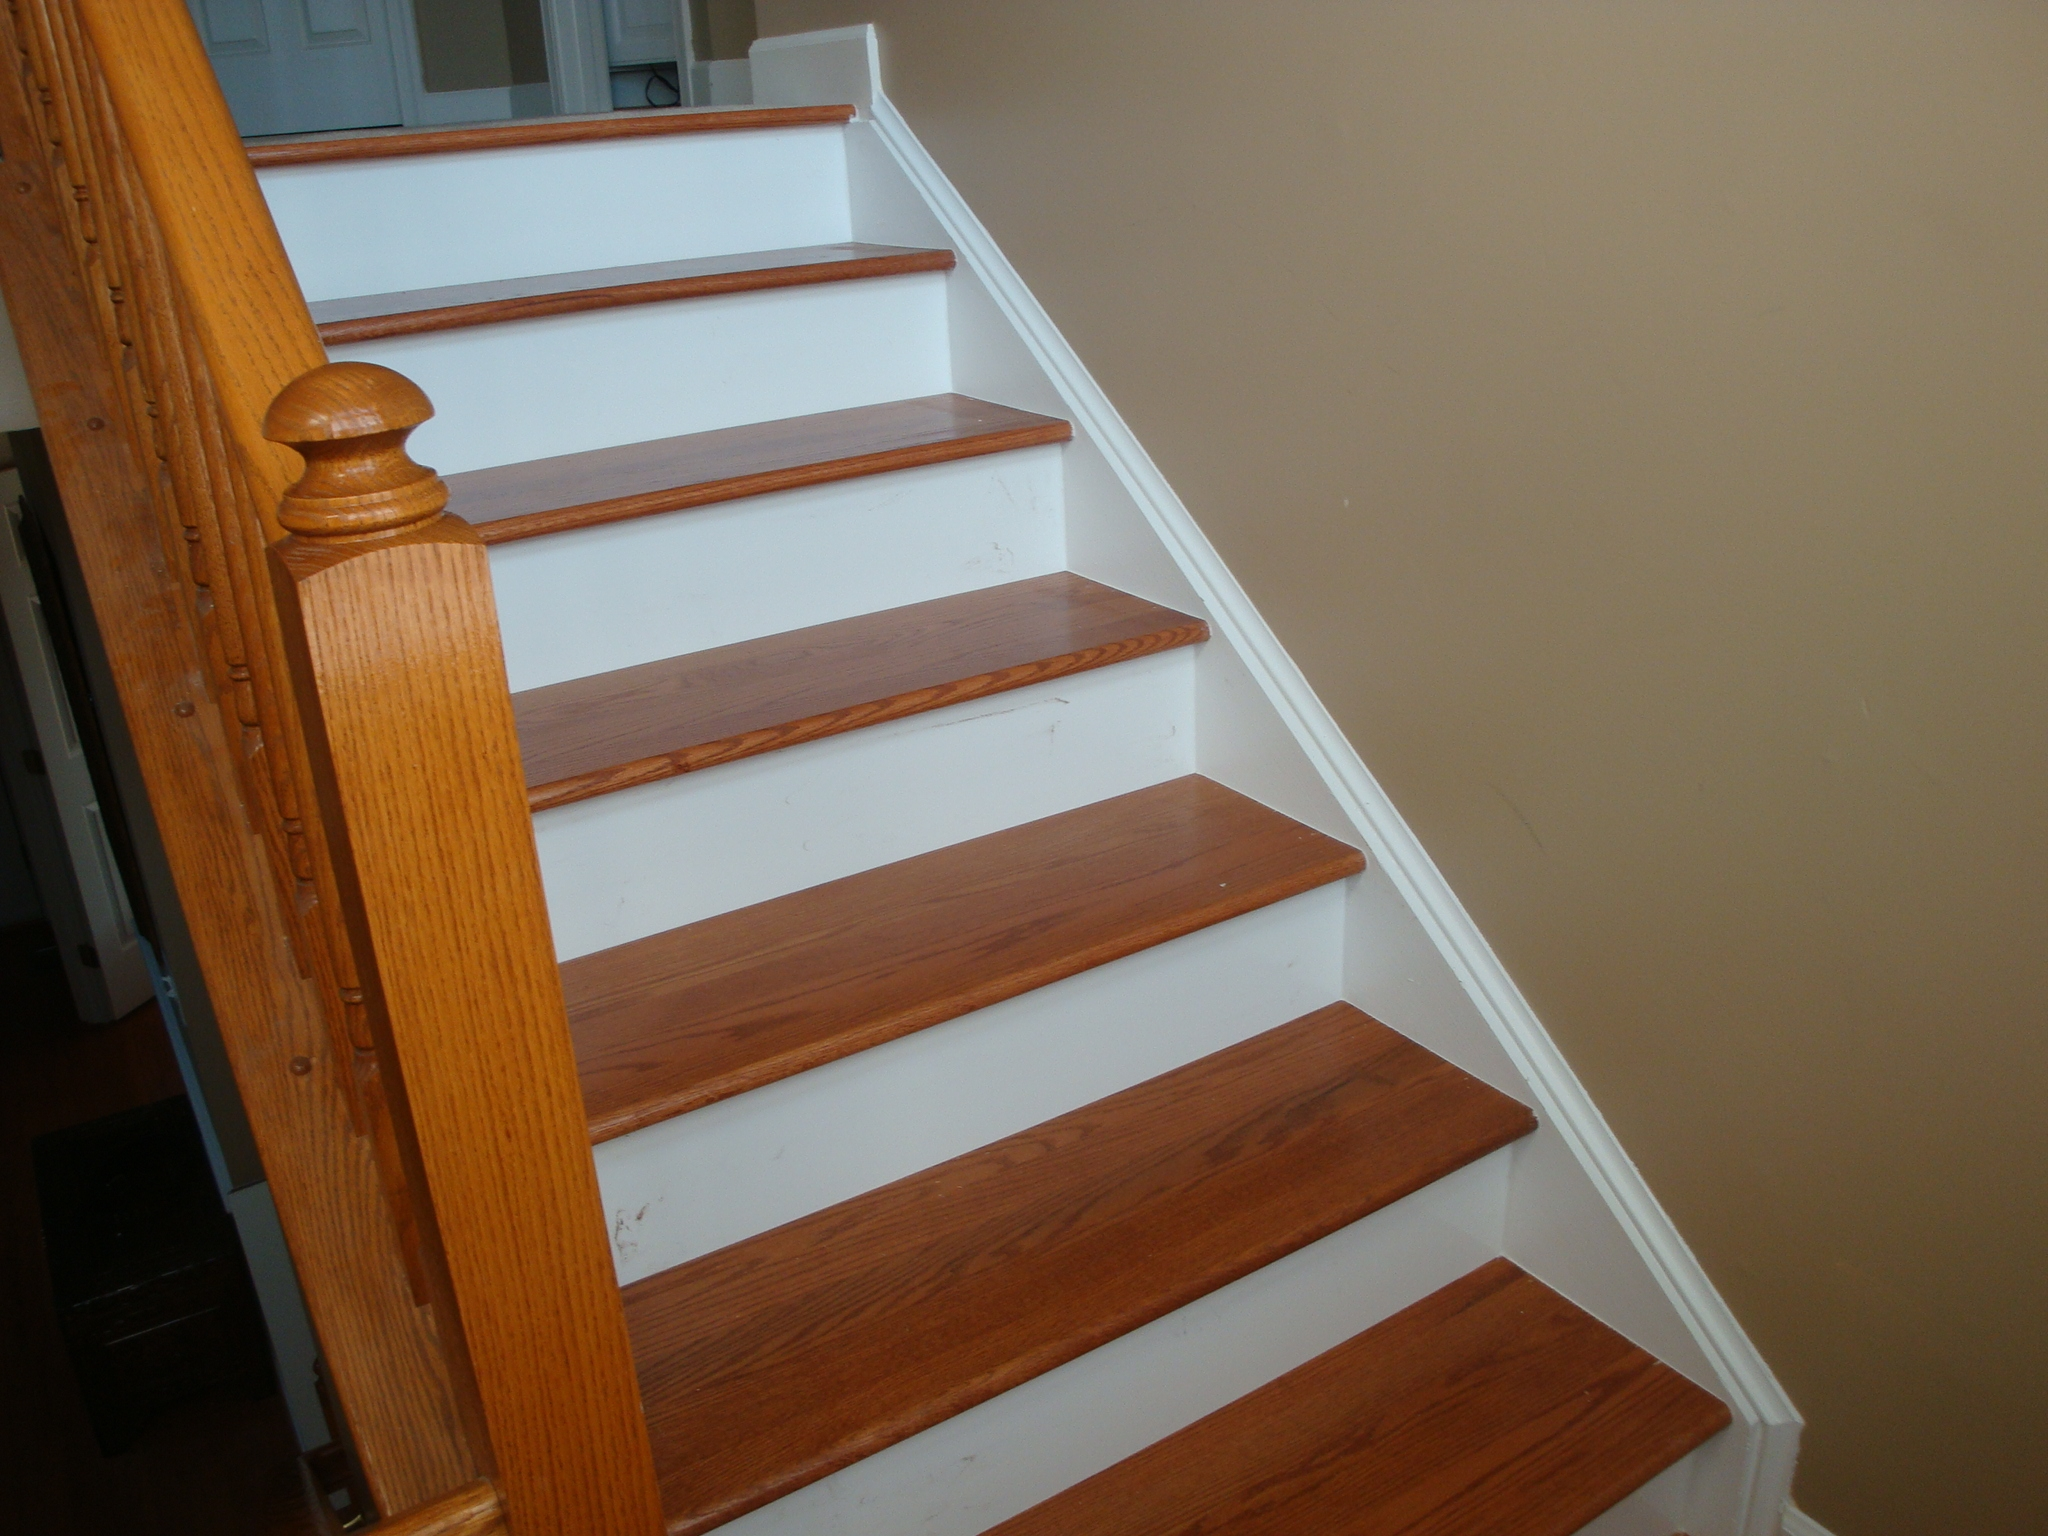 Finest Red Oak Stair Treads Latest Door Stair Design Intended For Stair Treads For Wooden Stairs (#7 of 20)